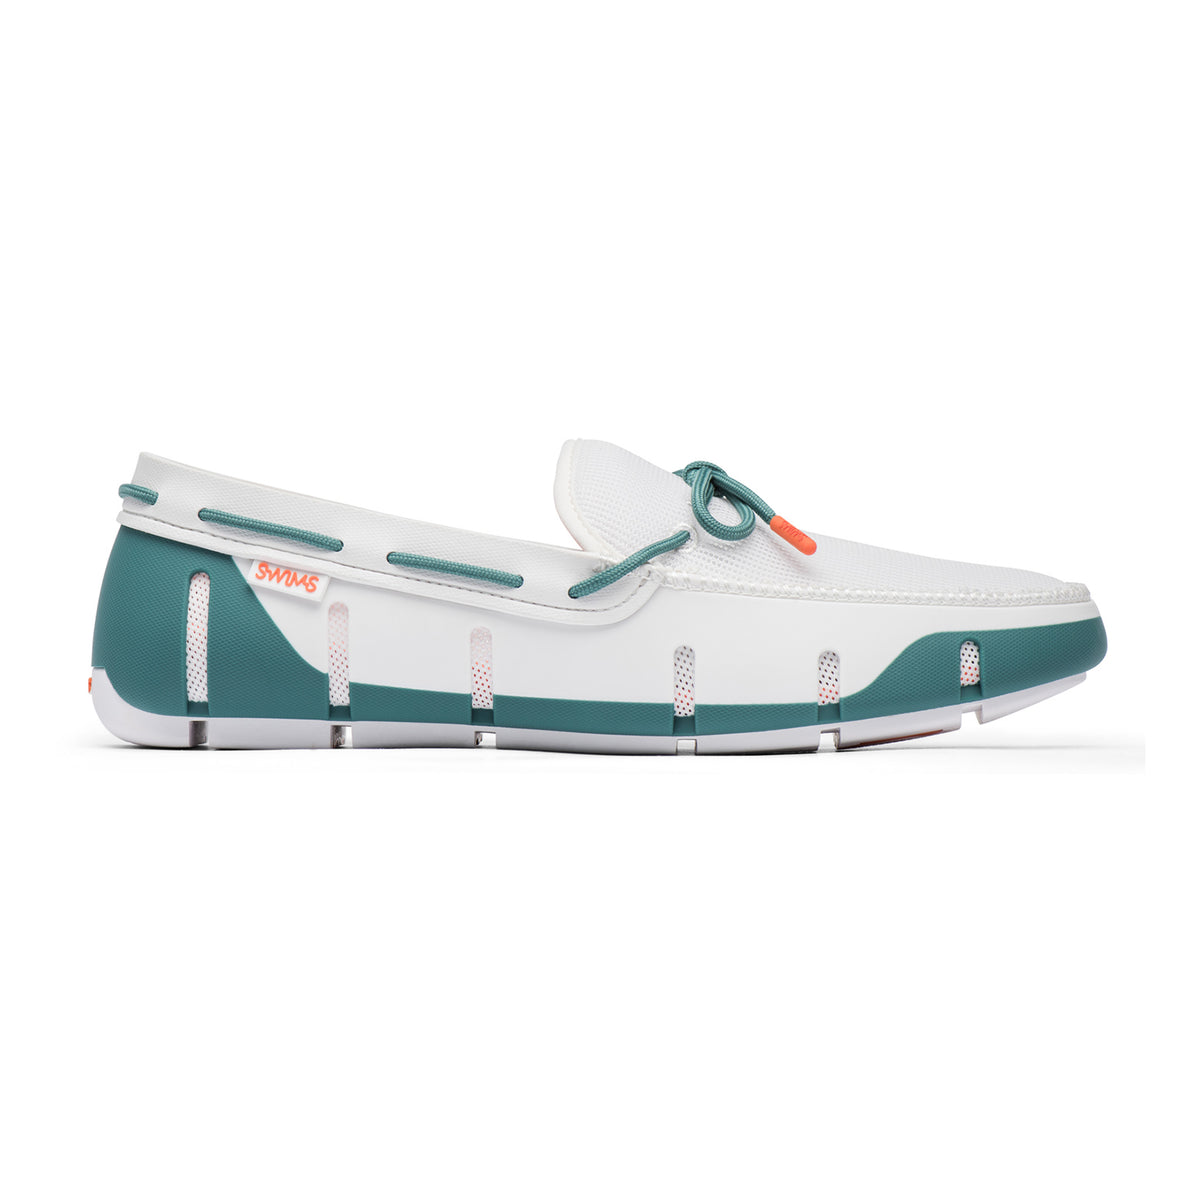 Stride Lace Loafer - background::white,variant::White/Teal